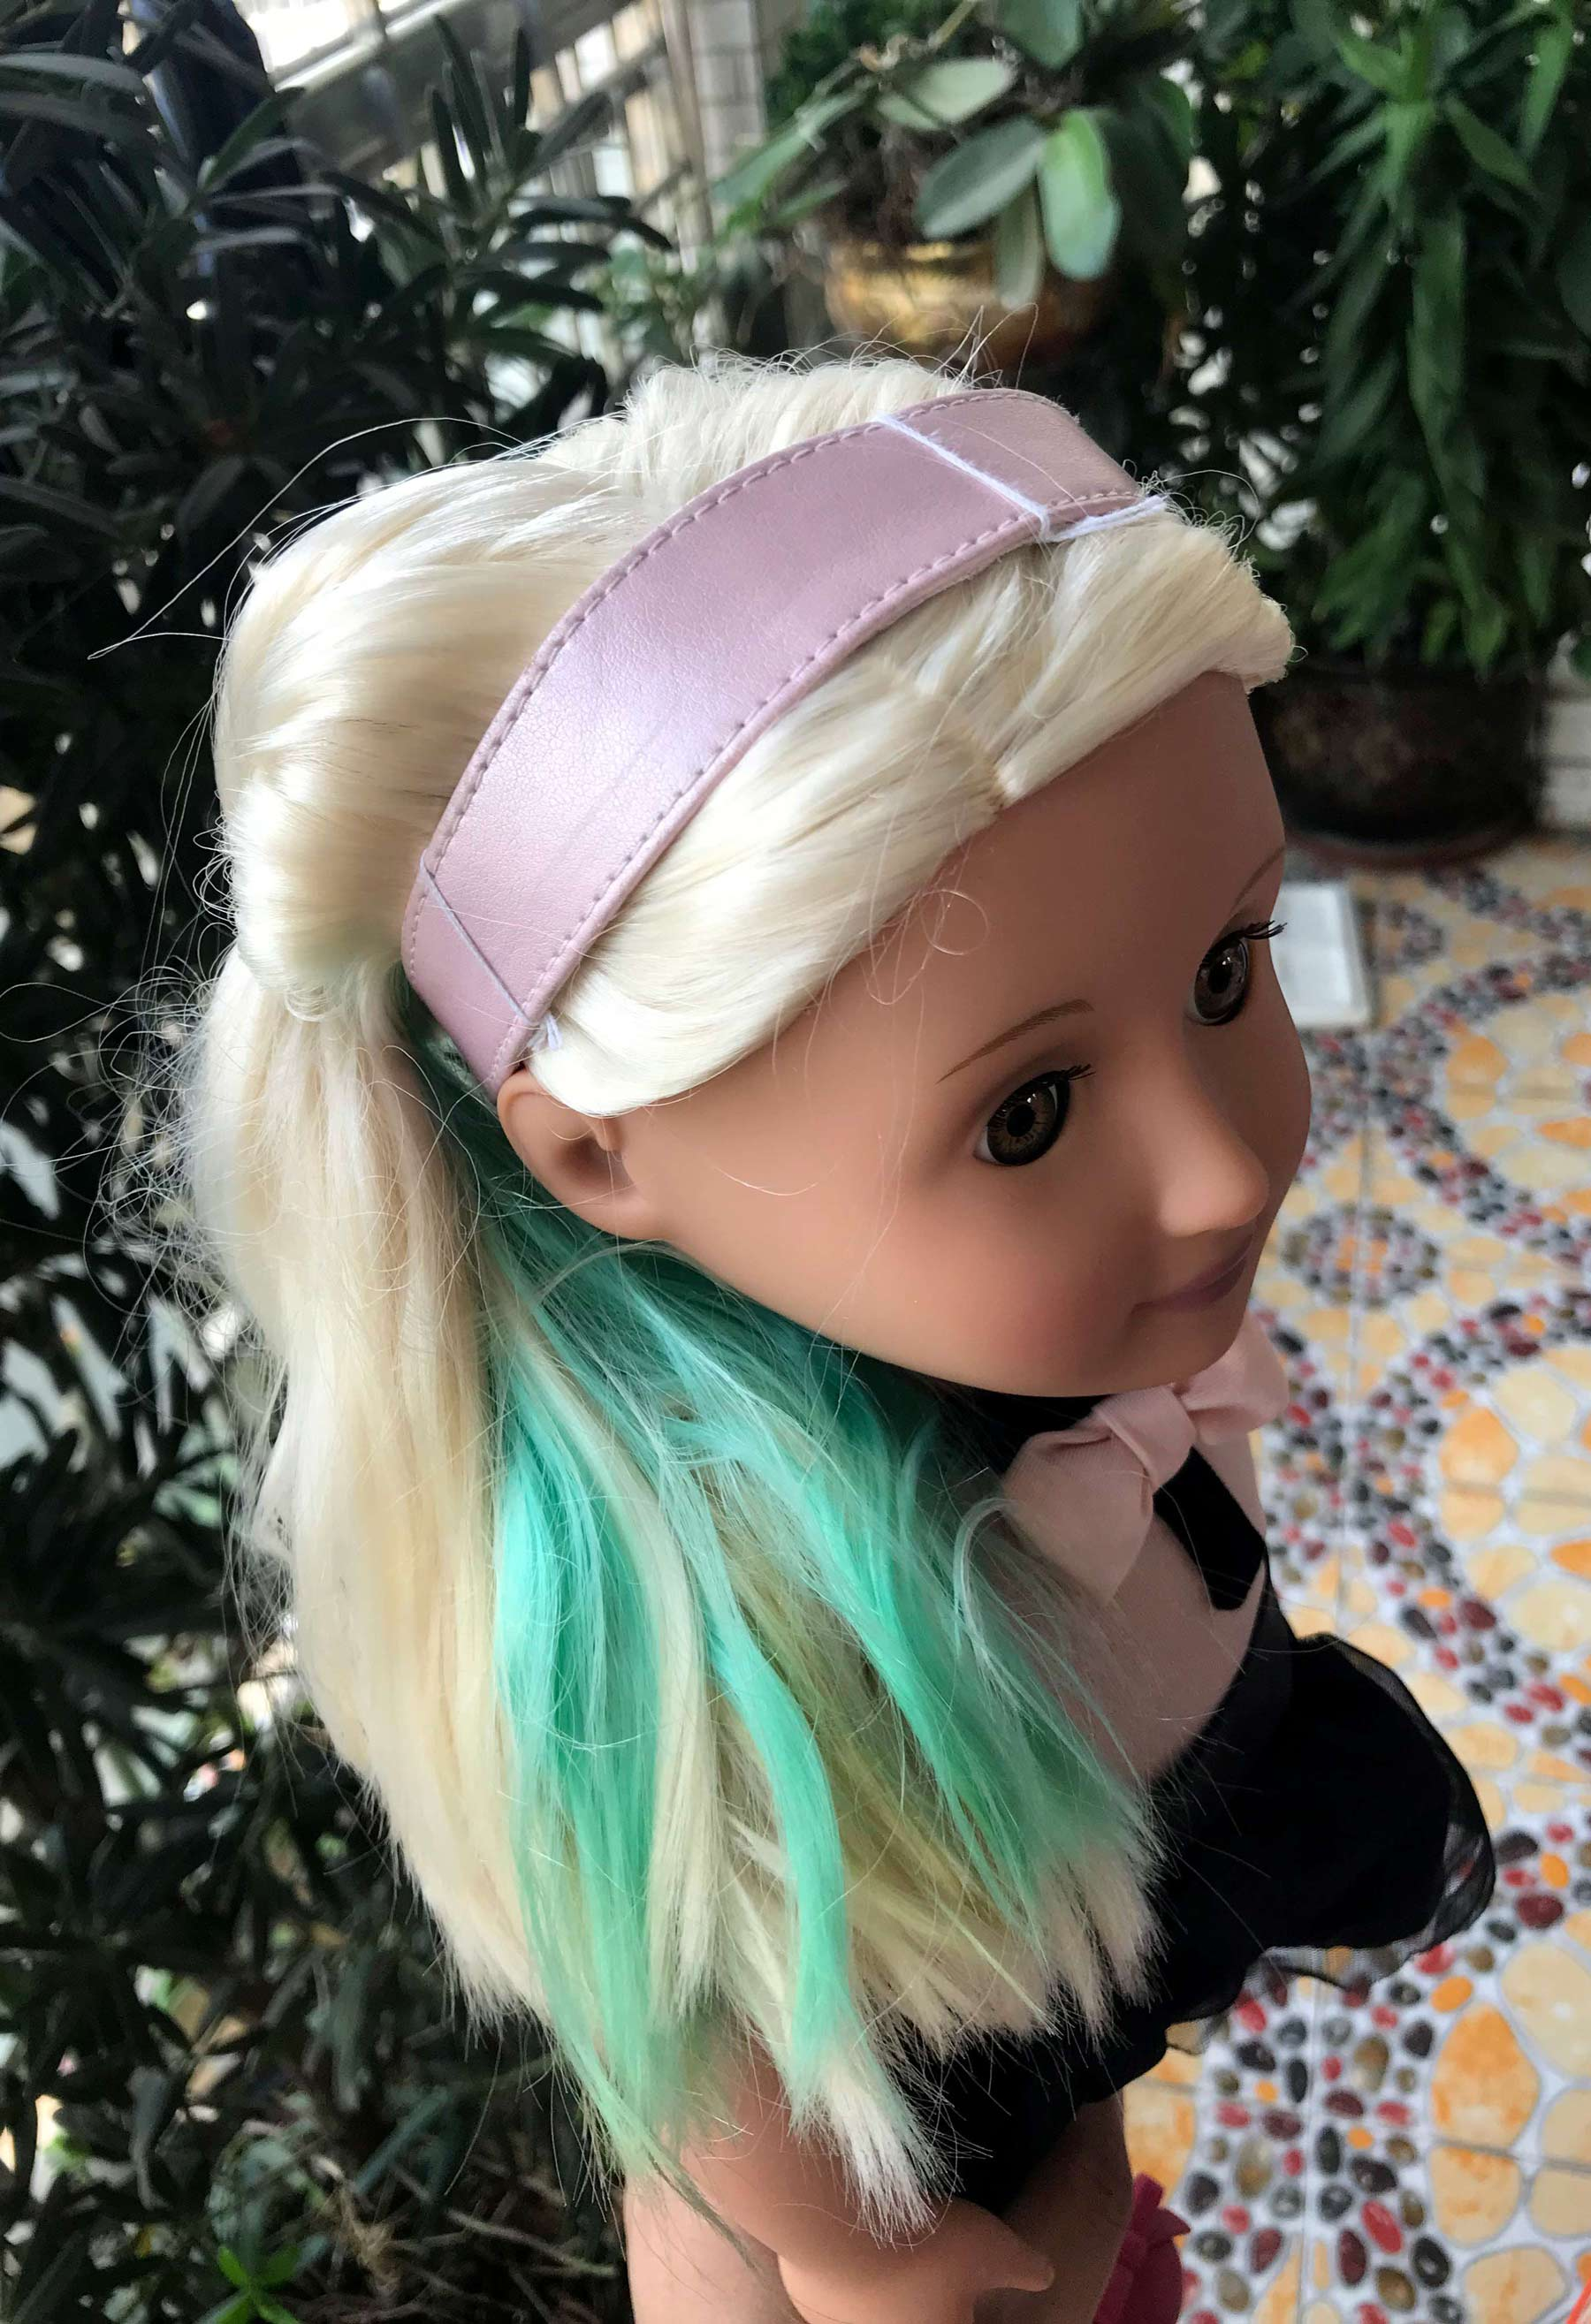 46cm doll without original box OG Doll With Clothes and Shoes Best Gift For Girls